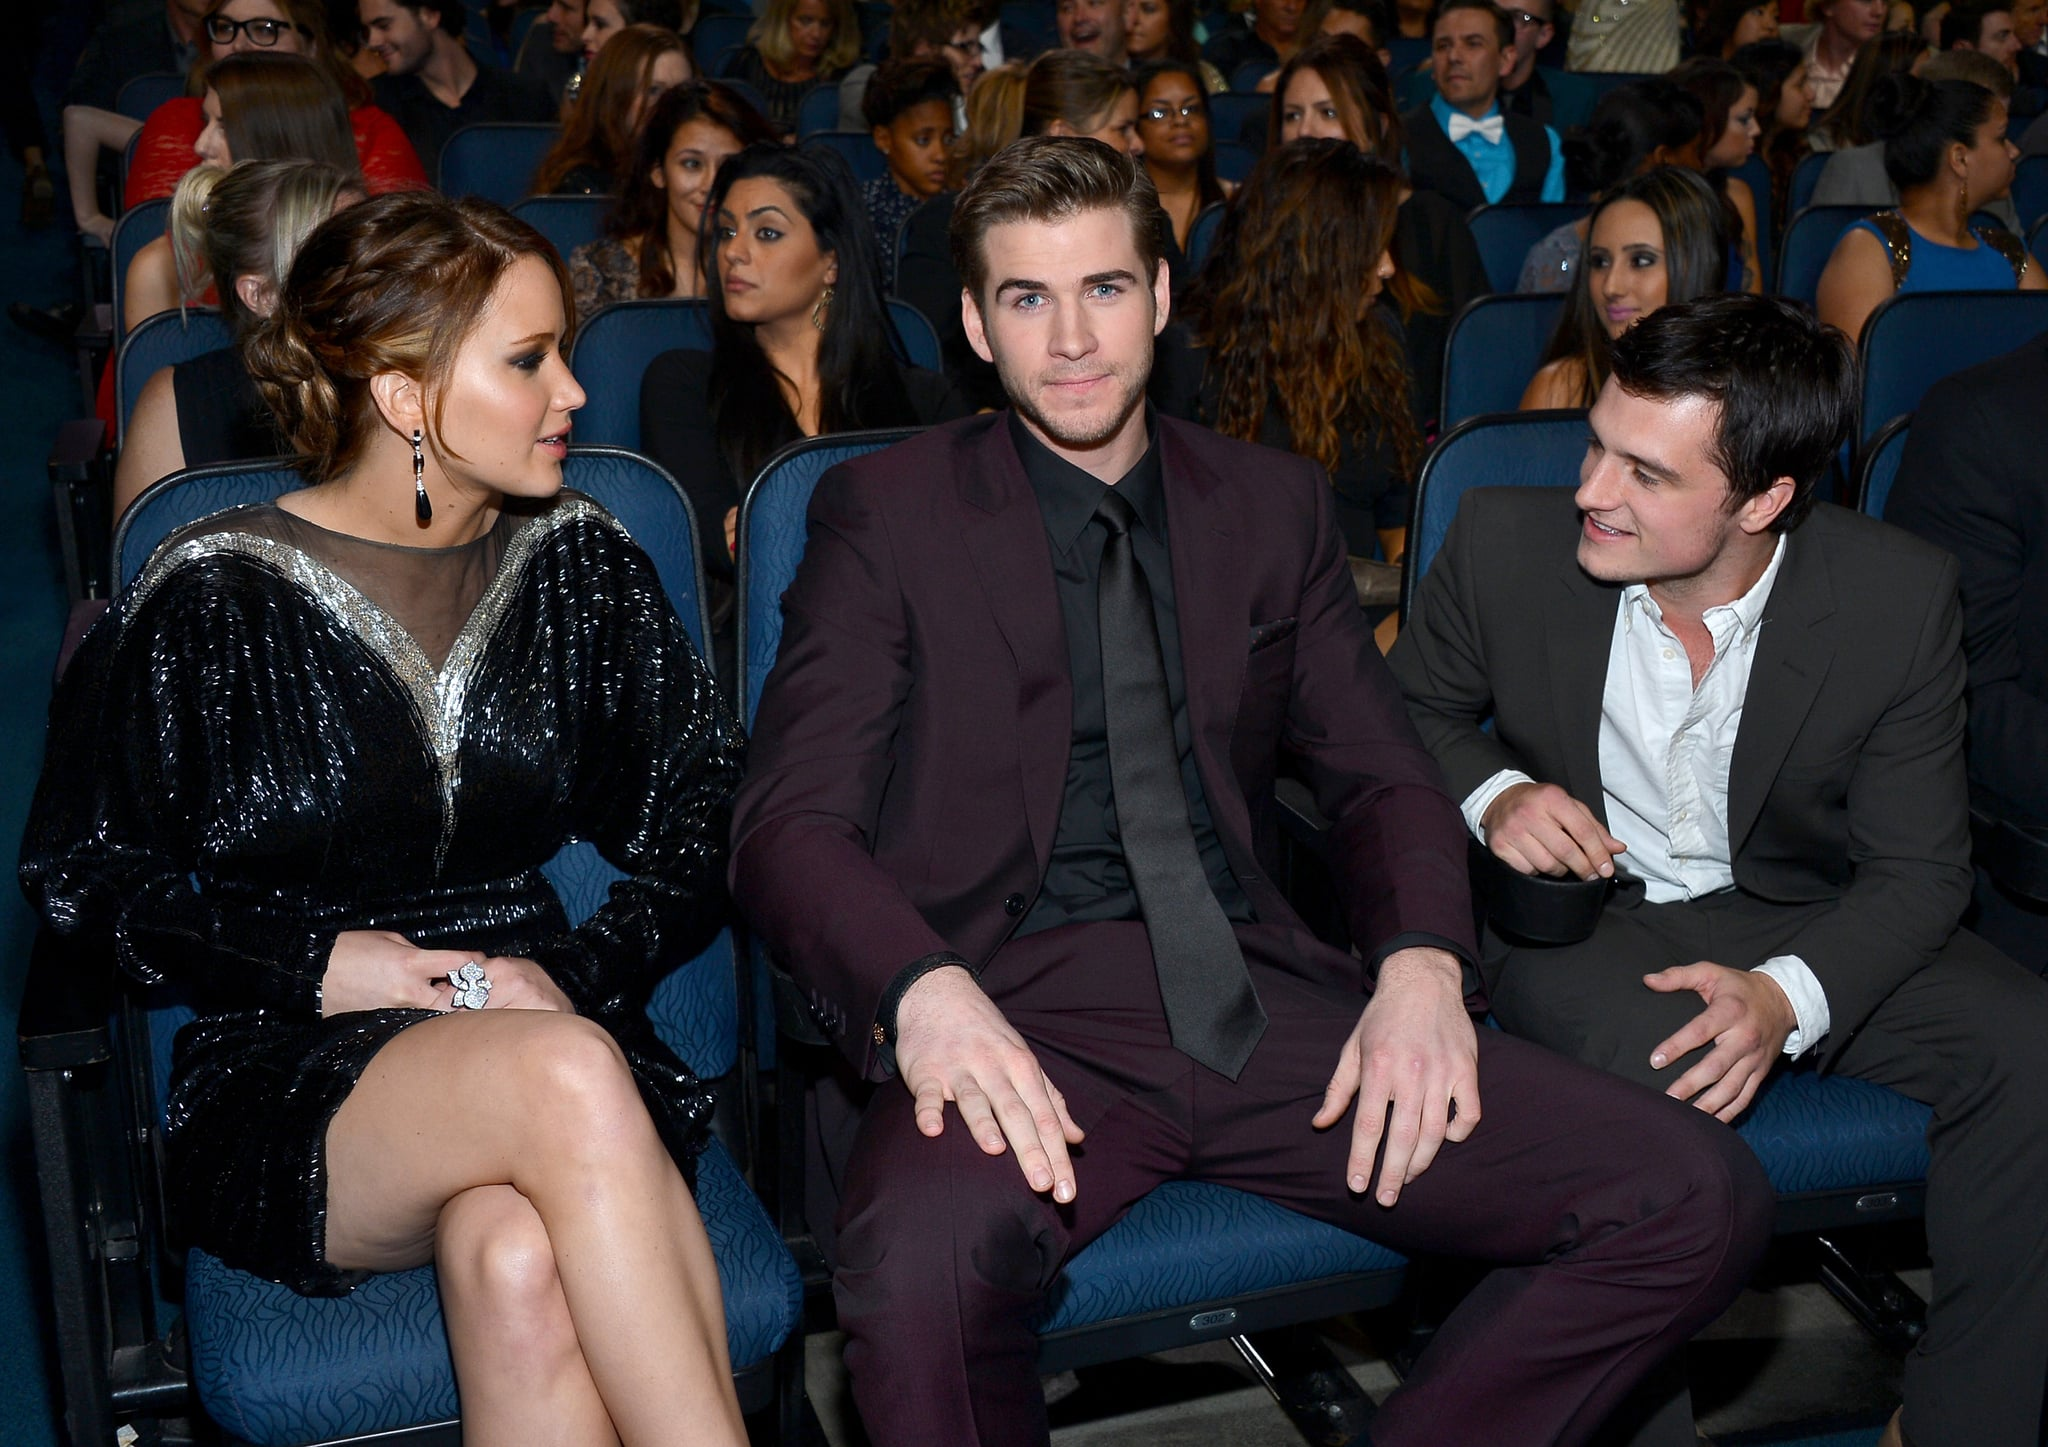 Fun Celebrity Snaps Inside the People's Choice Awards